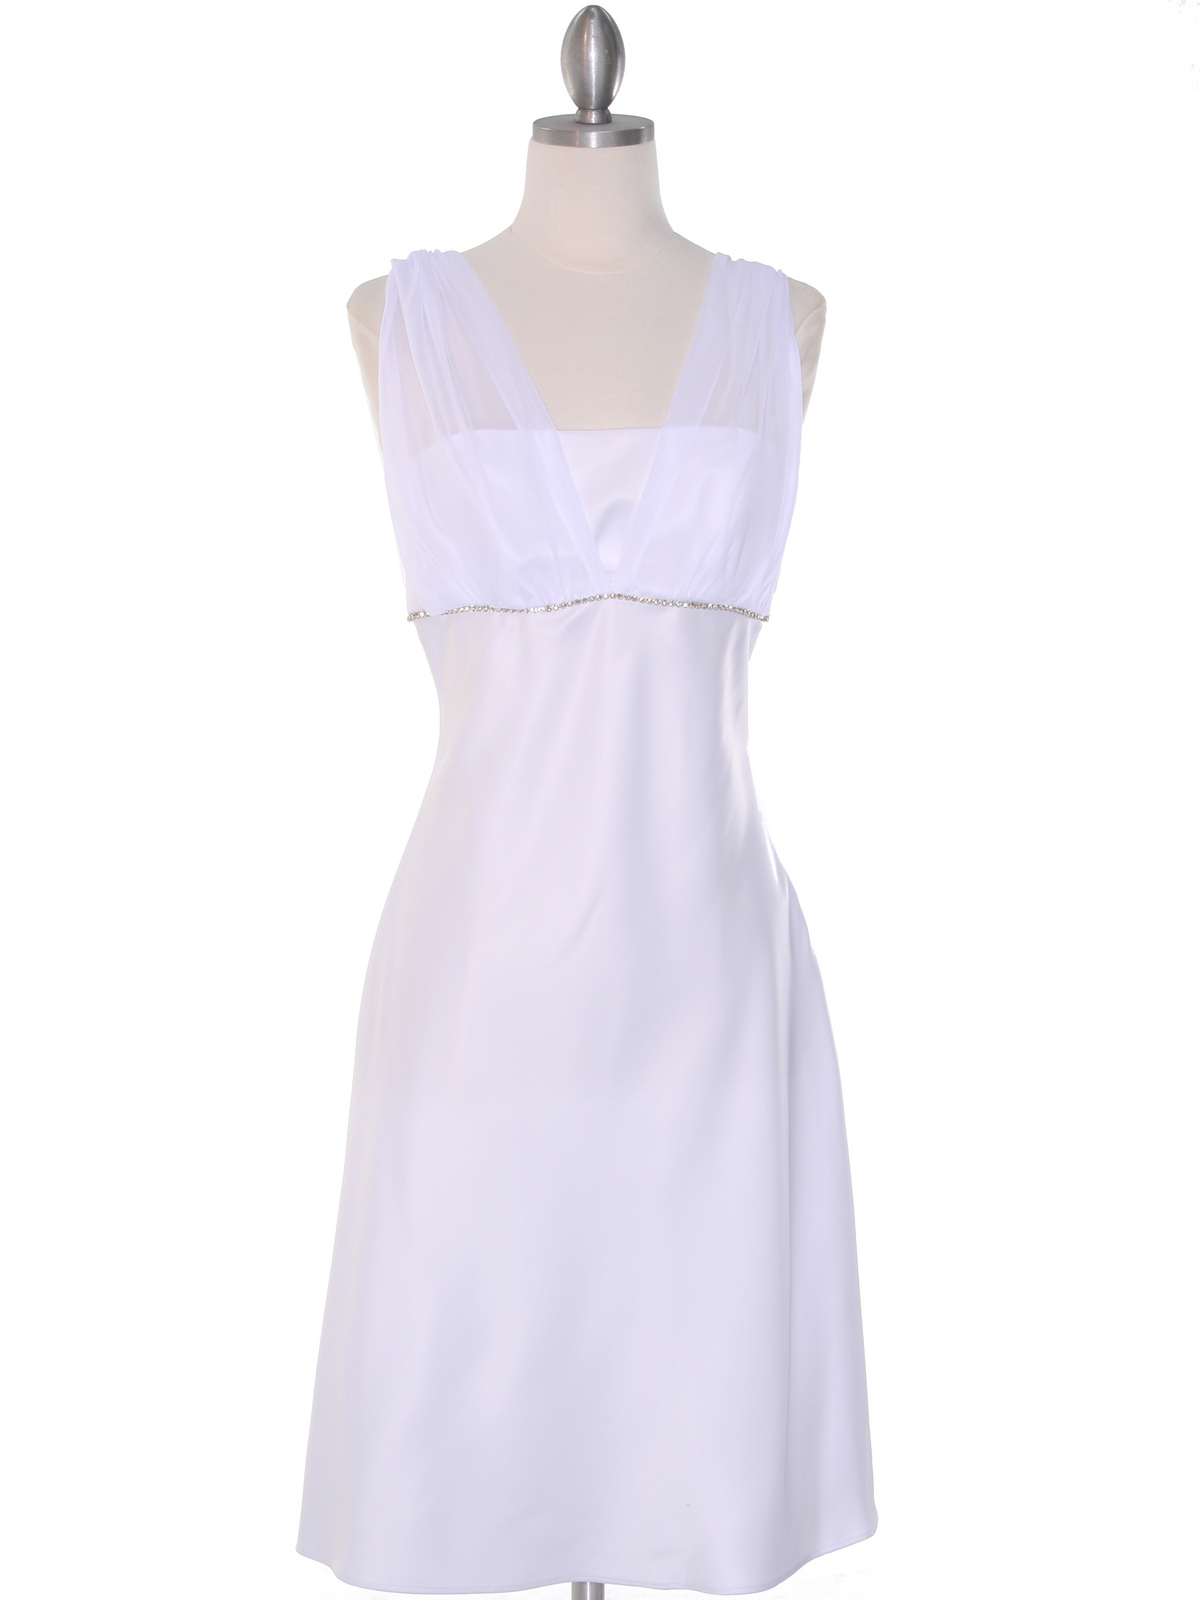 E1165 White Graduation Dress with Rhinestone Trim - White, Front View ...